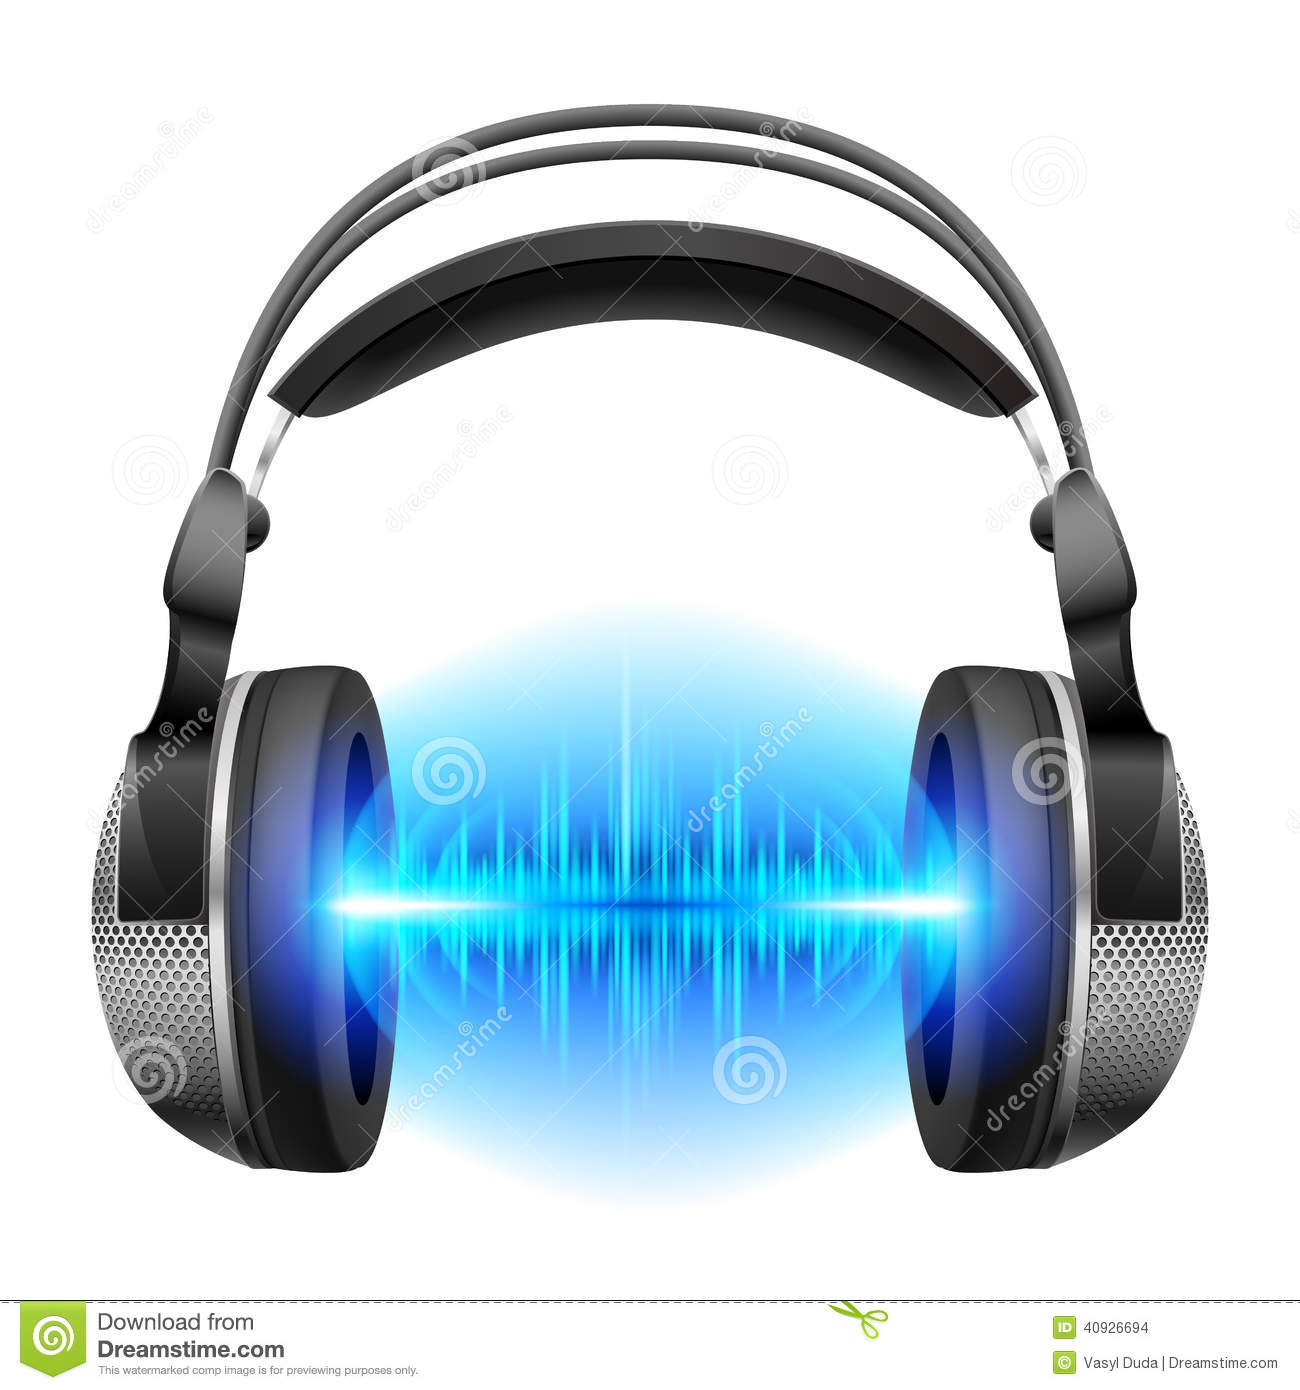 Morning 3d Wallpaper Headphones With Music Playing